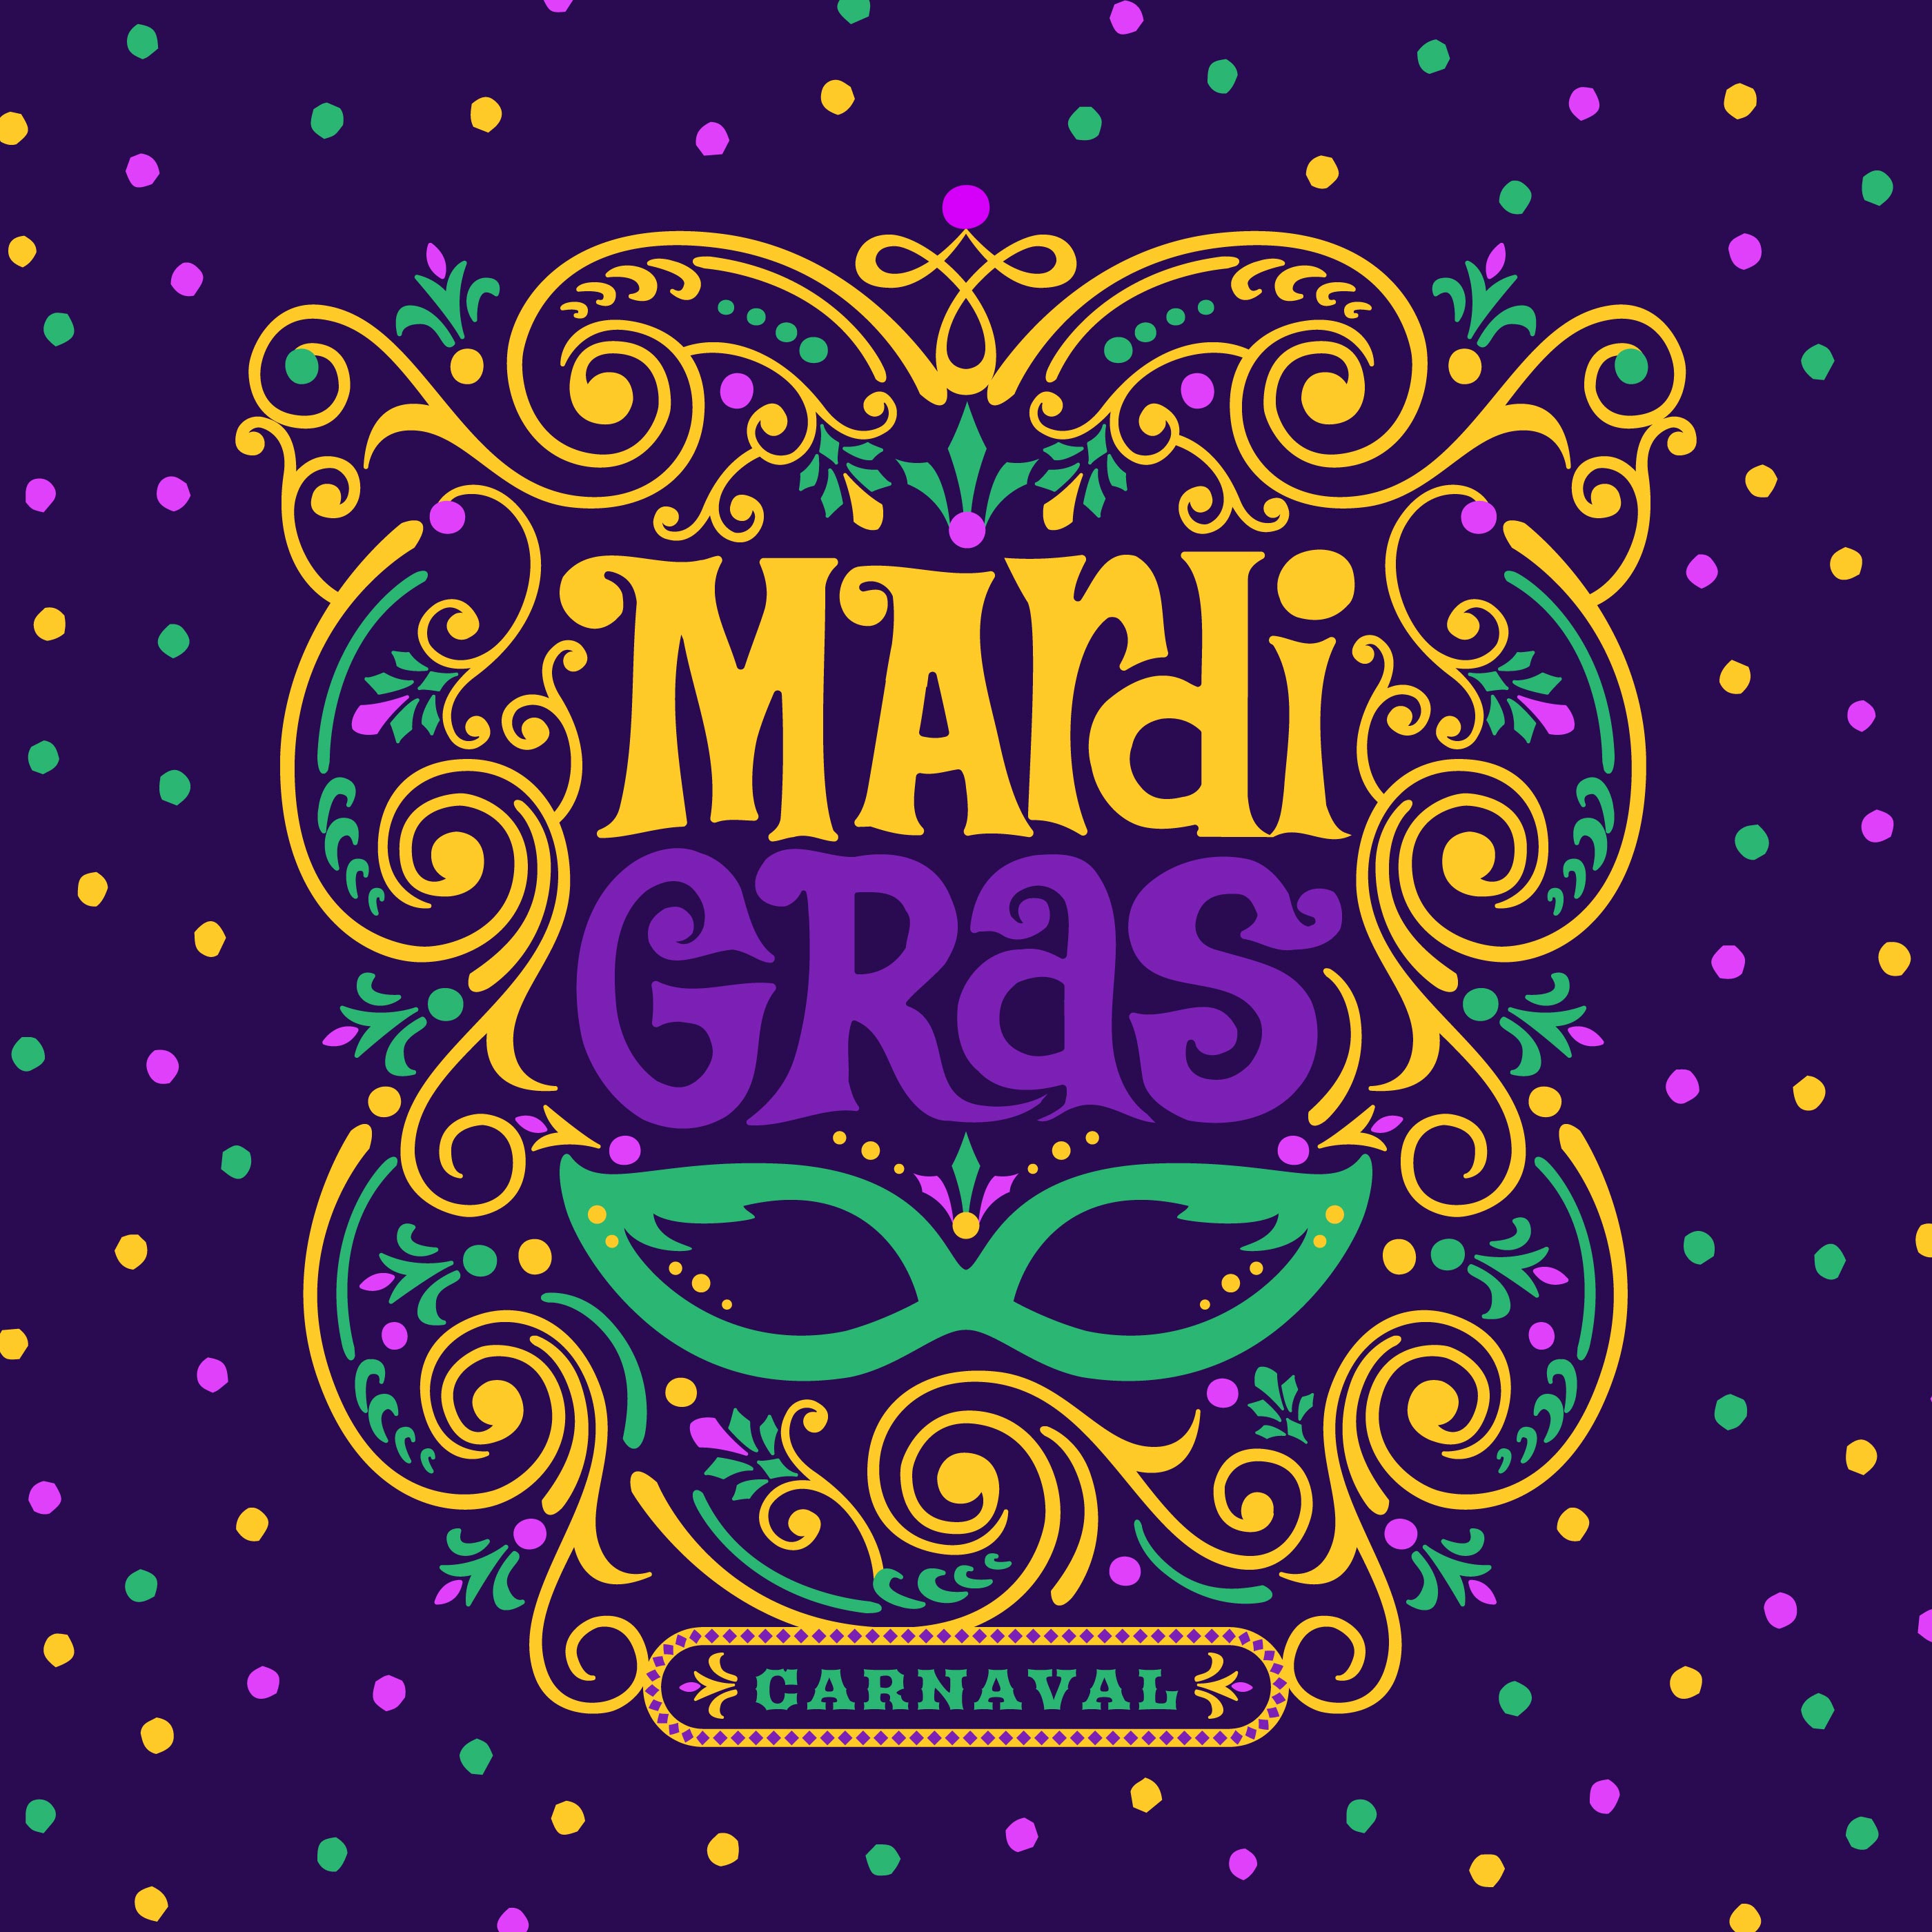 Mardi Gras Carnaval Ornate Decor Design